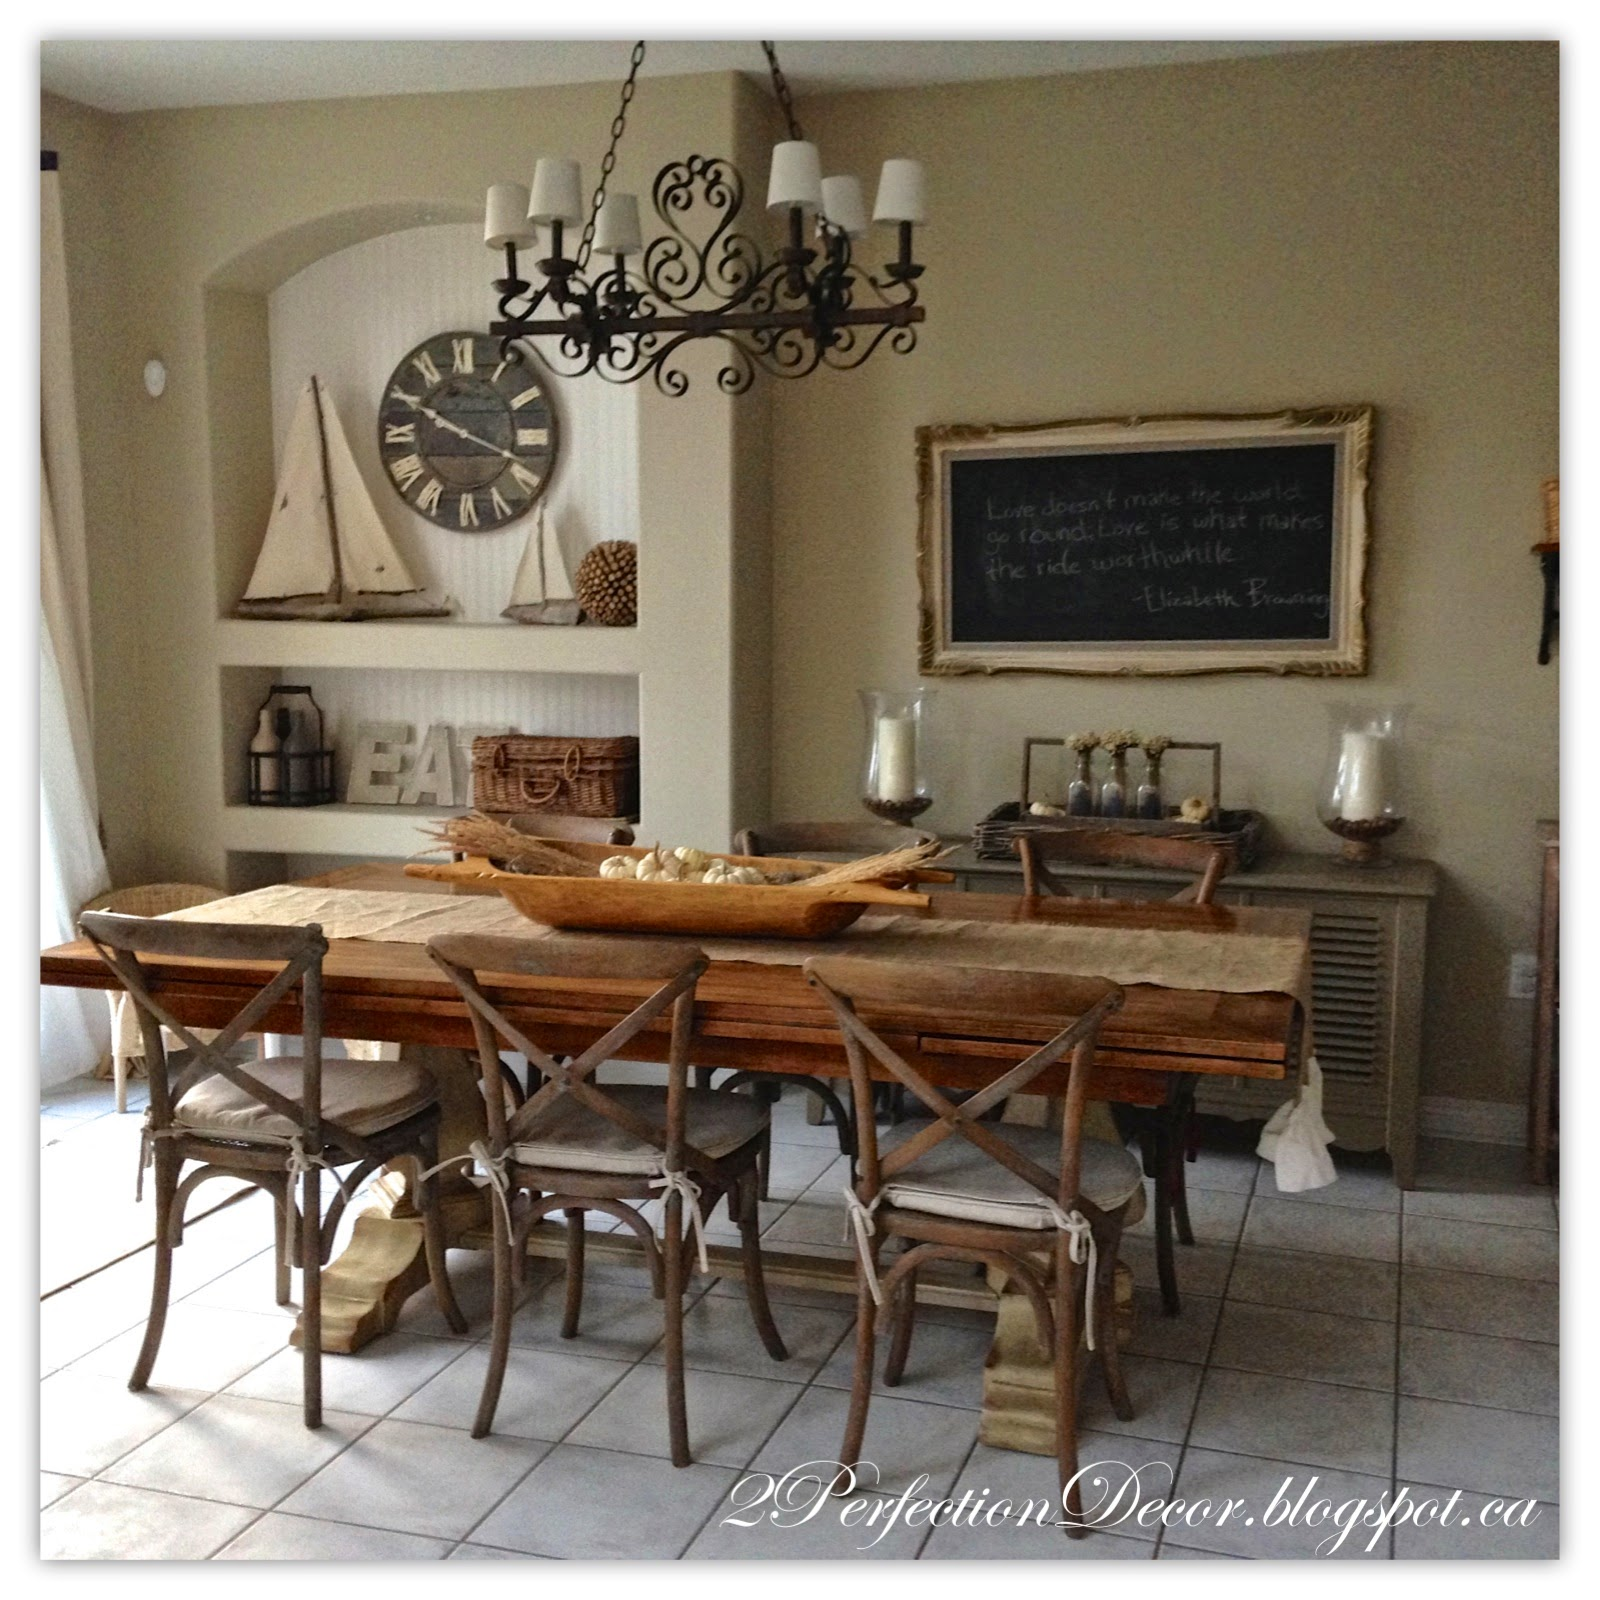 2Perfection Decor: Kitchen Eating Area Reveal